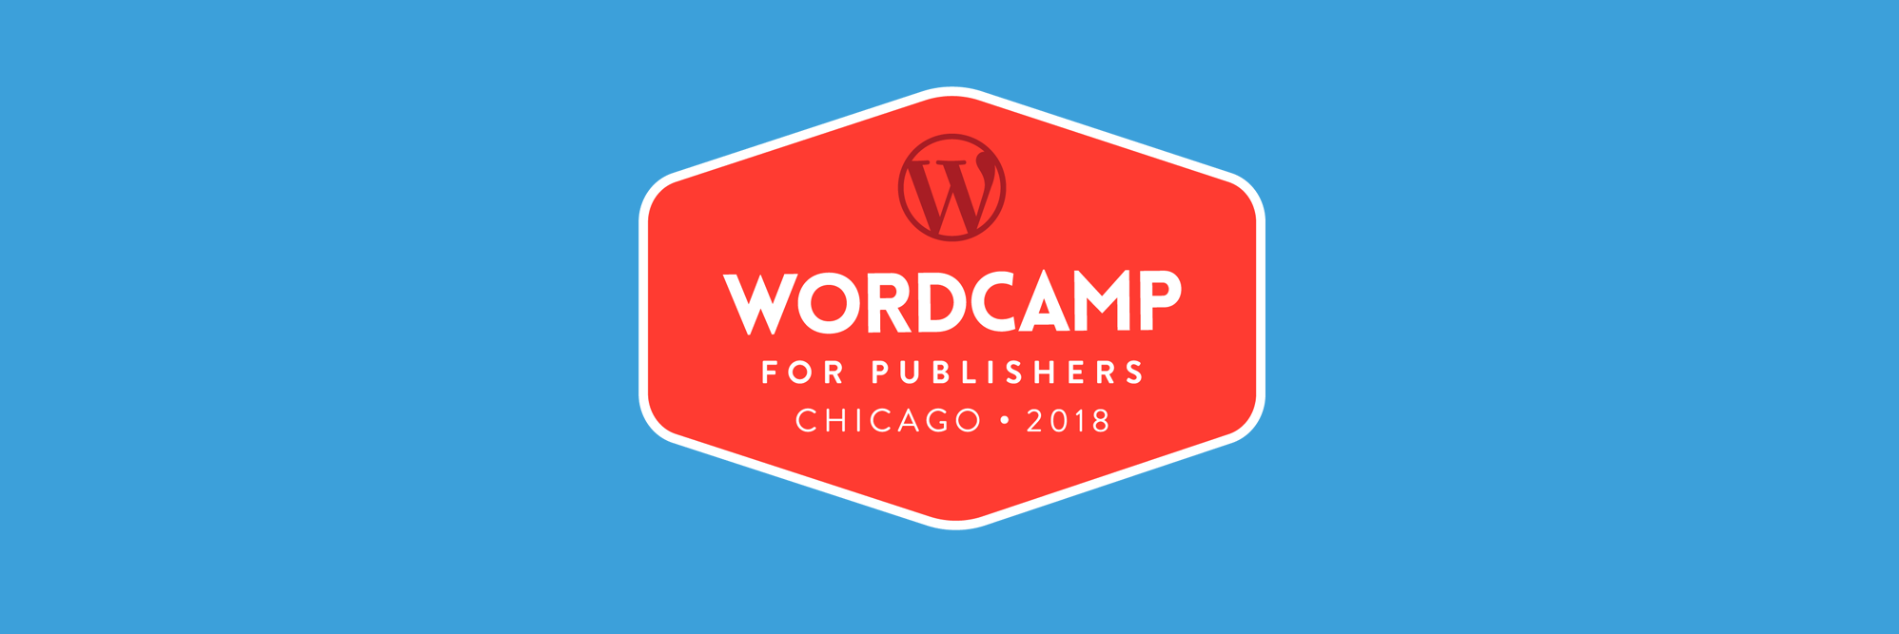 WordCamp for Publishers Chicago banner